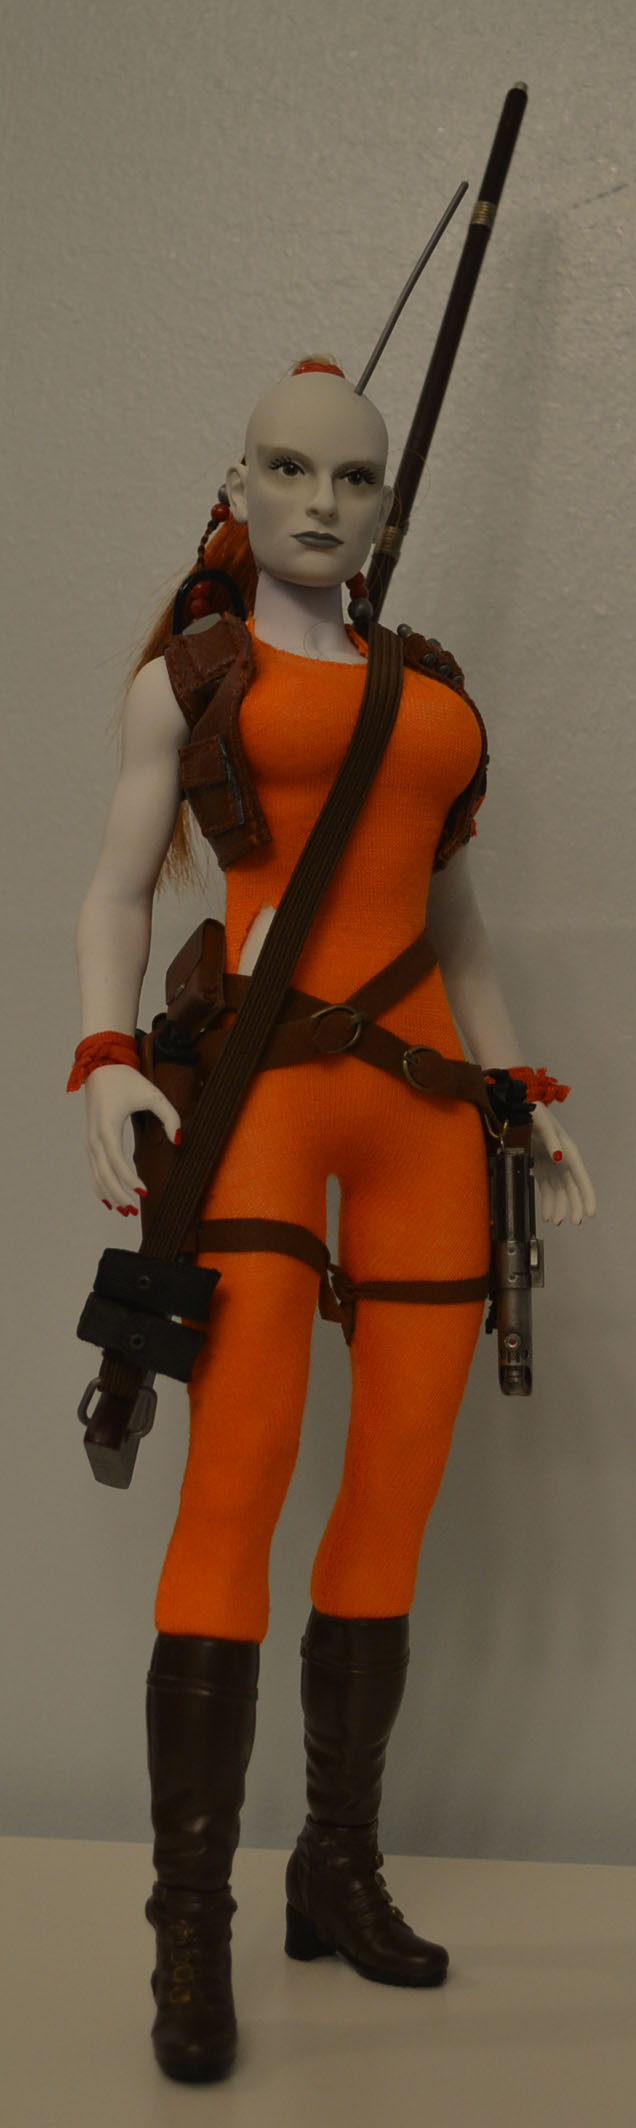 Custom/Kitbash: Aurra Sing - Star Wars Bounty Hunter (Episode I) _dsc3128